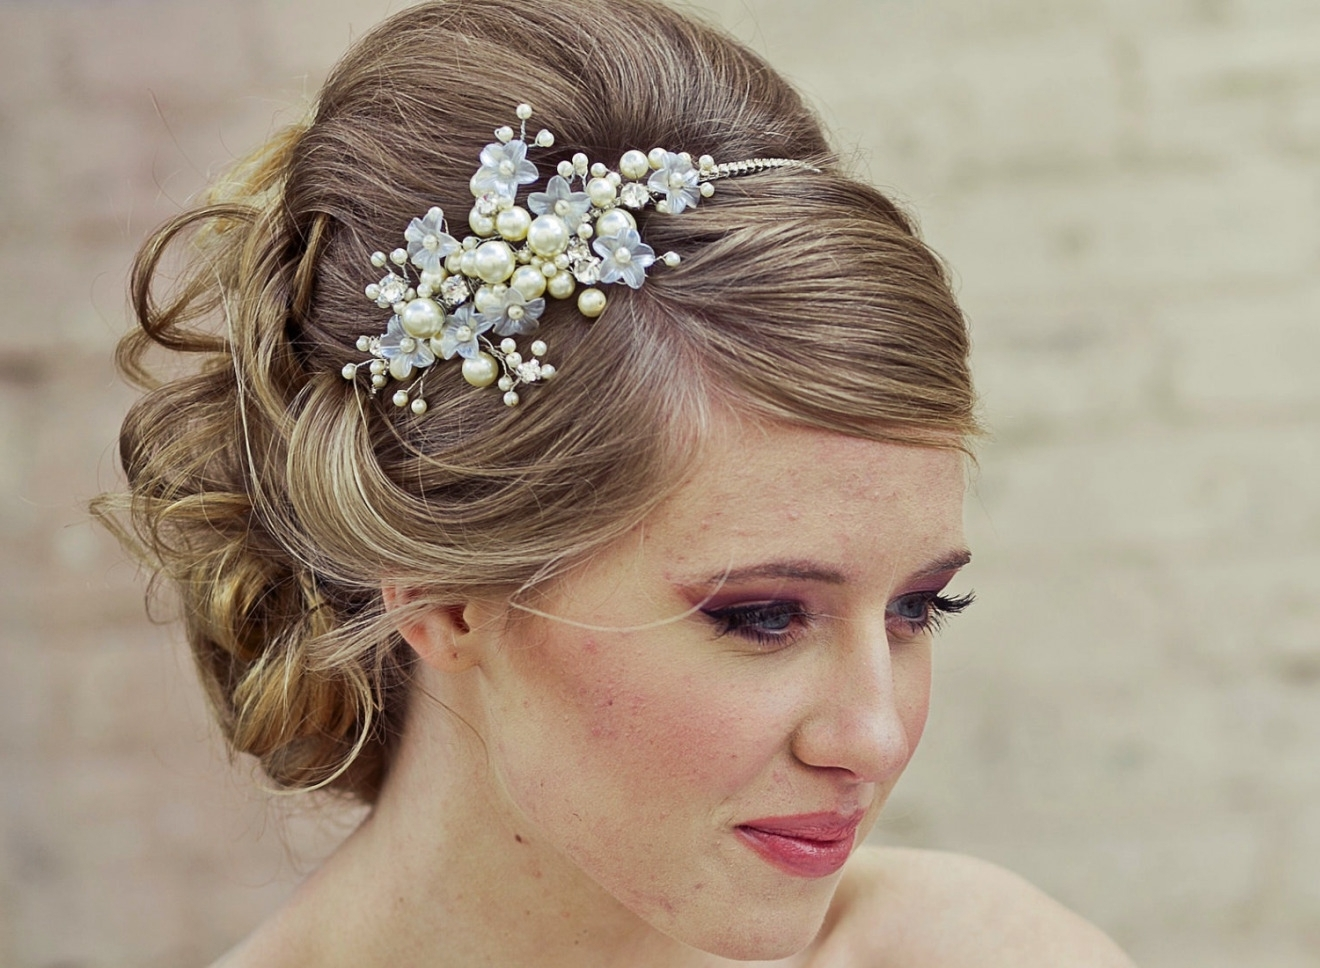 Hairstyles : Elegant Pearl Headband For Wedding Hairstyle (View 5 of 15)